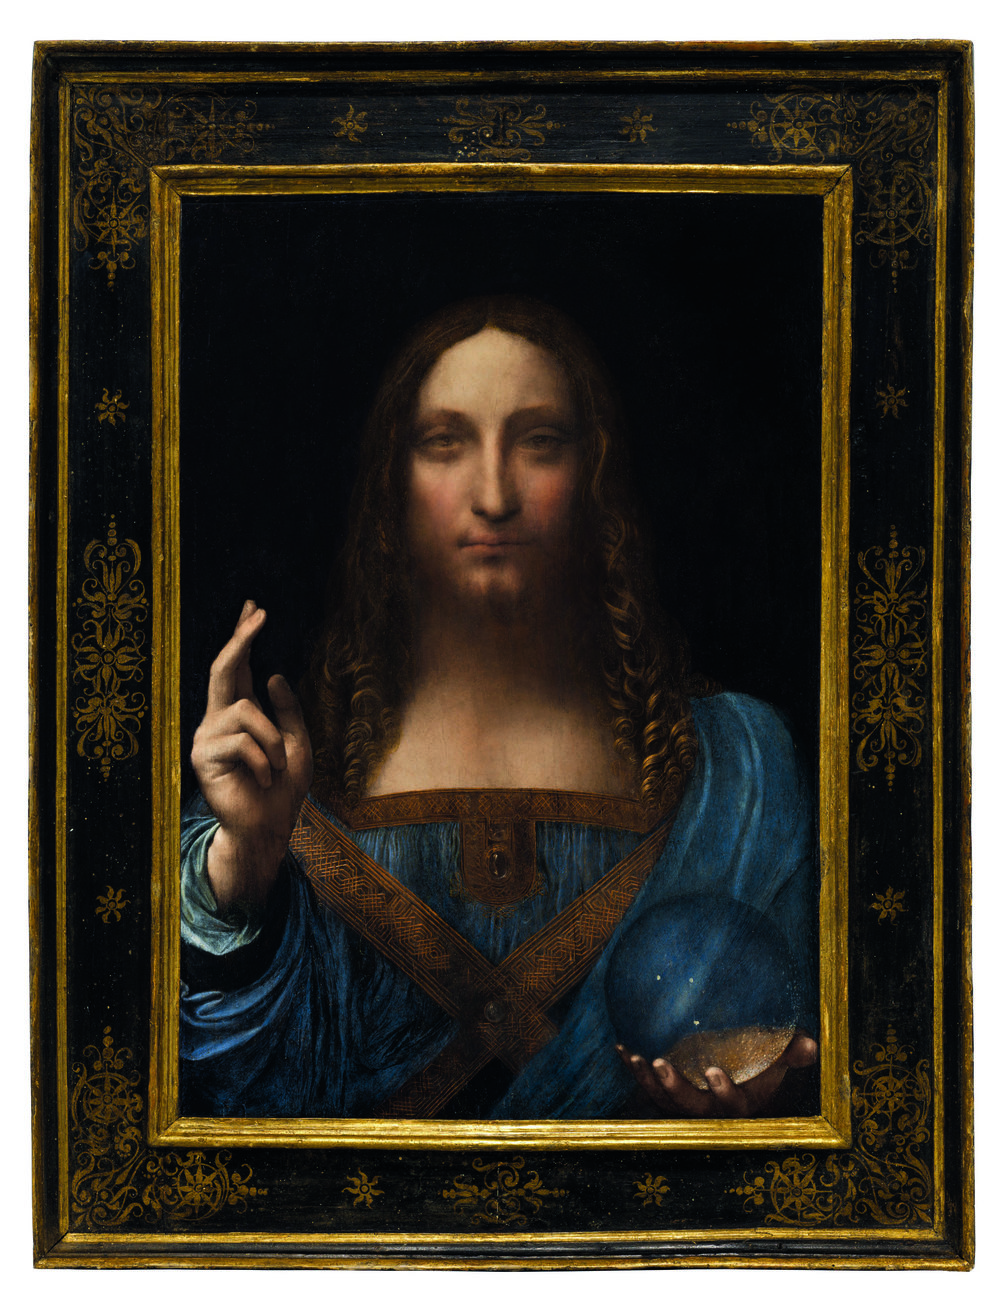 Leonardo da Vinci, Salvator Mundi (c.1500). Courtesy of CHRISTIE'S IMAGES LTD. 2018.